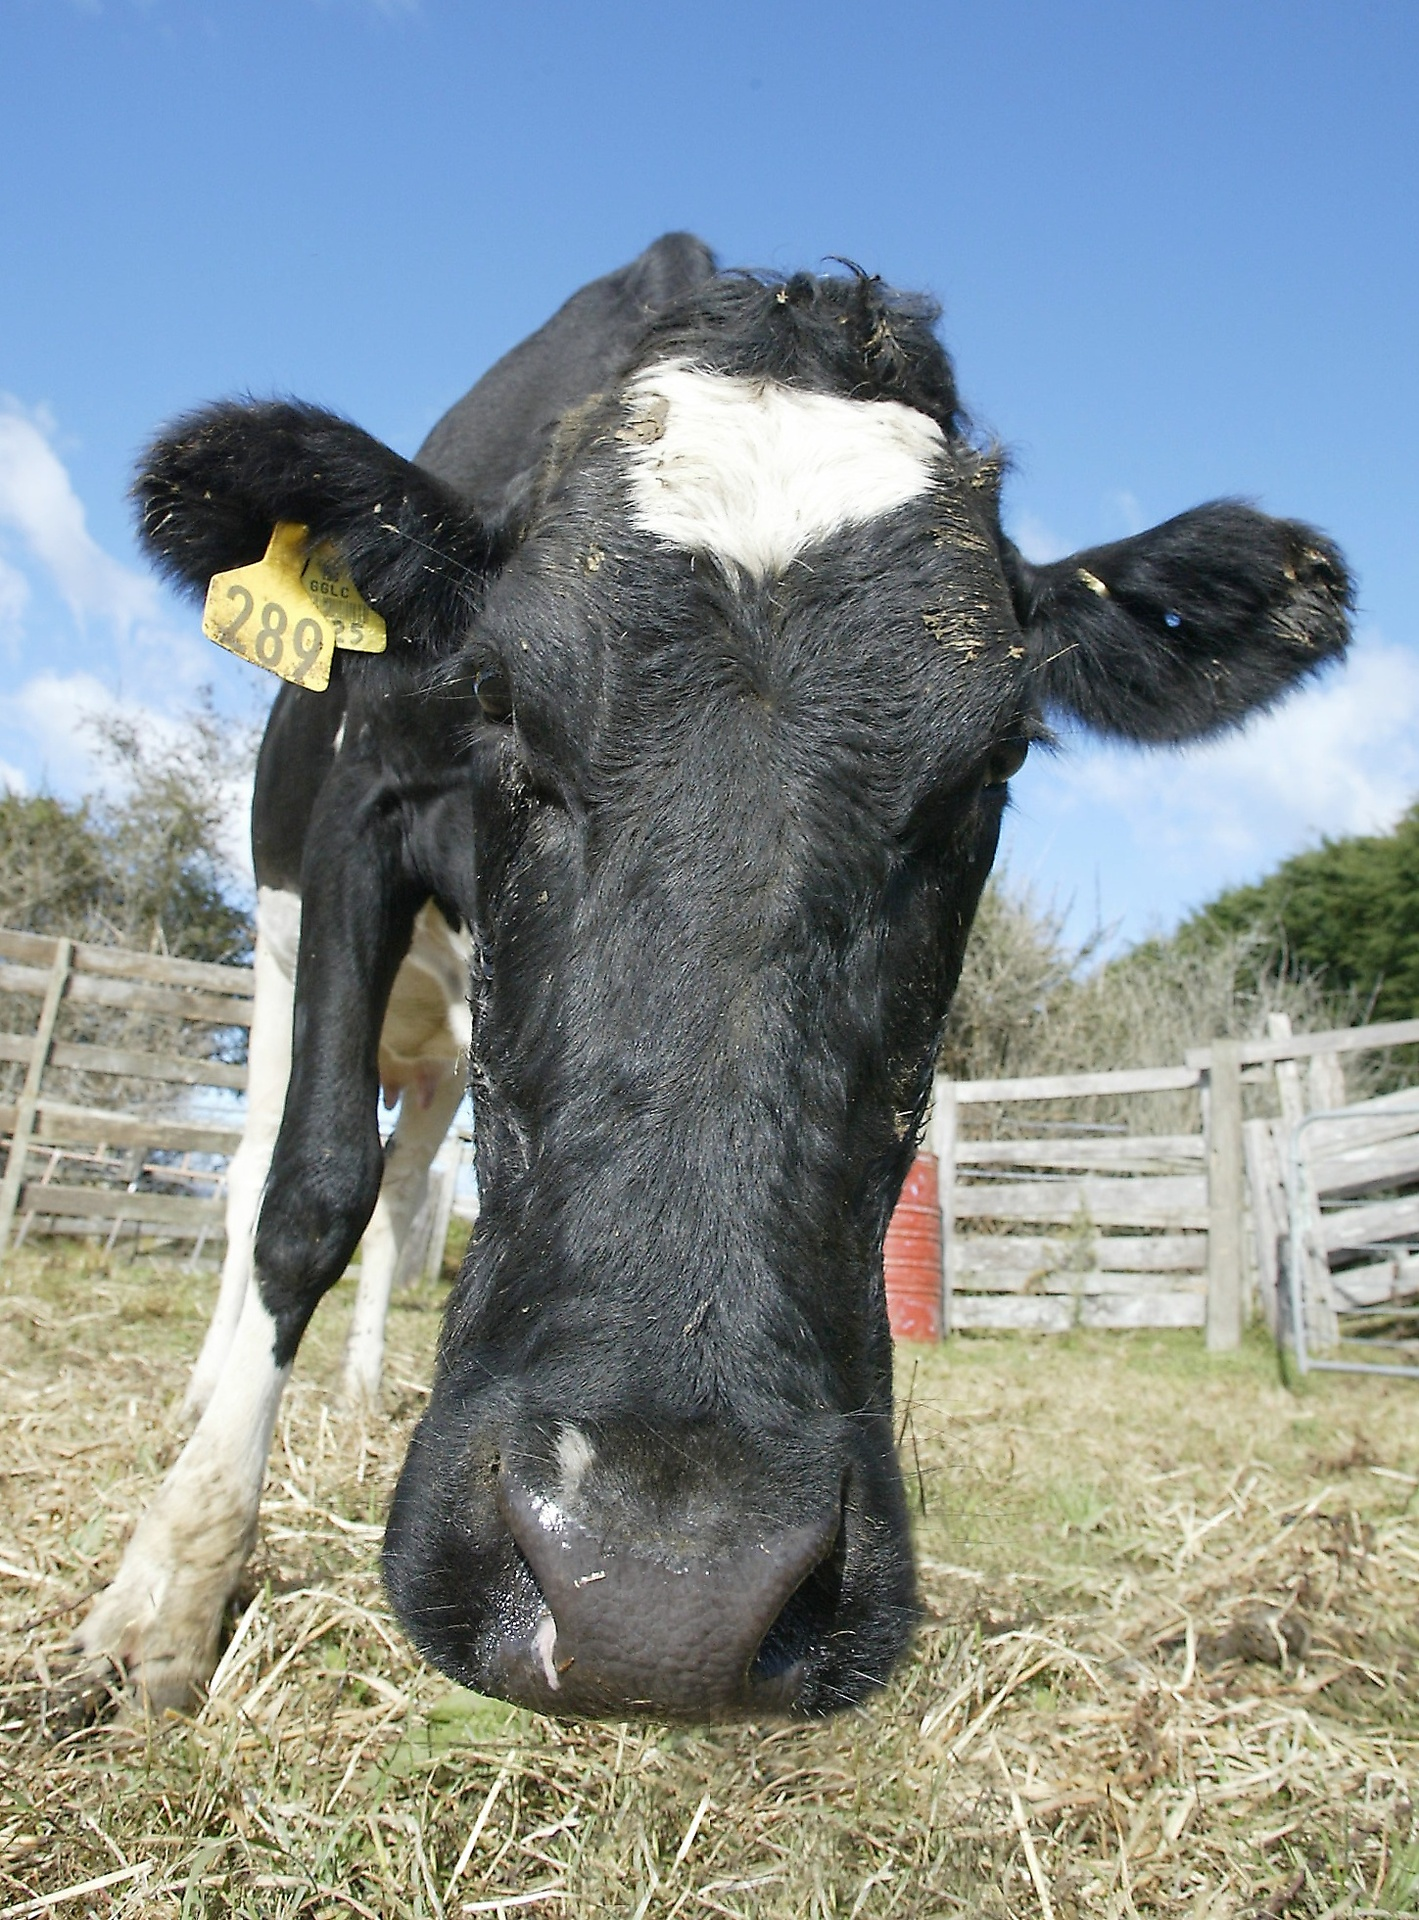 Record fine: Headaches and vomiting from dairy company smell